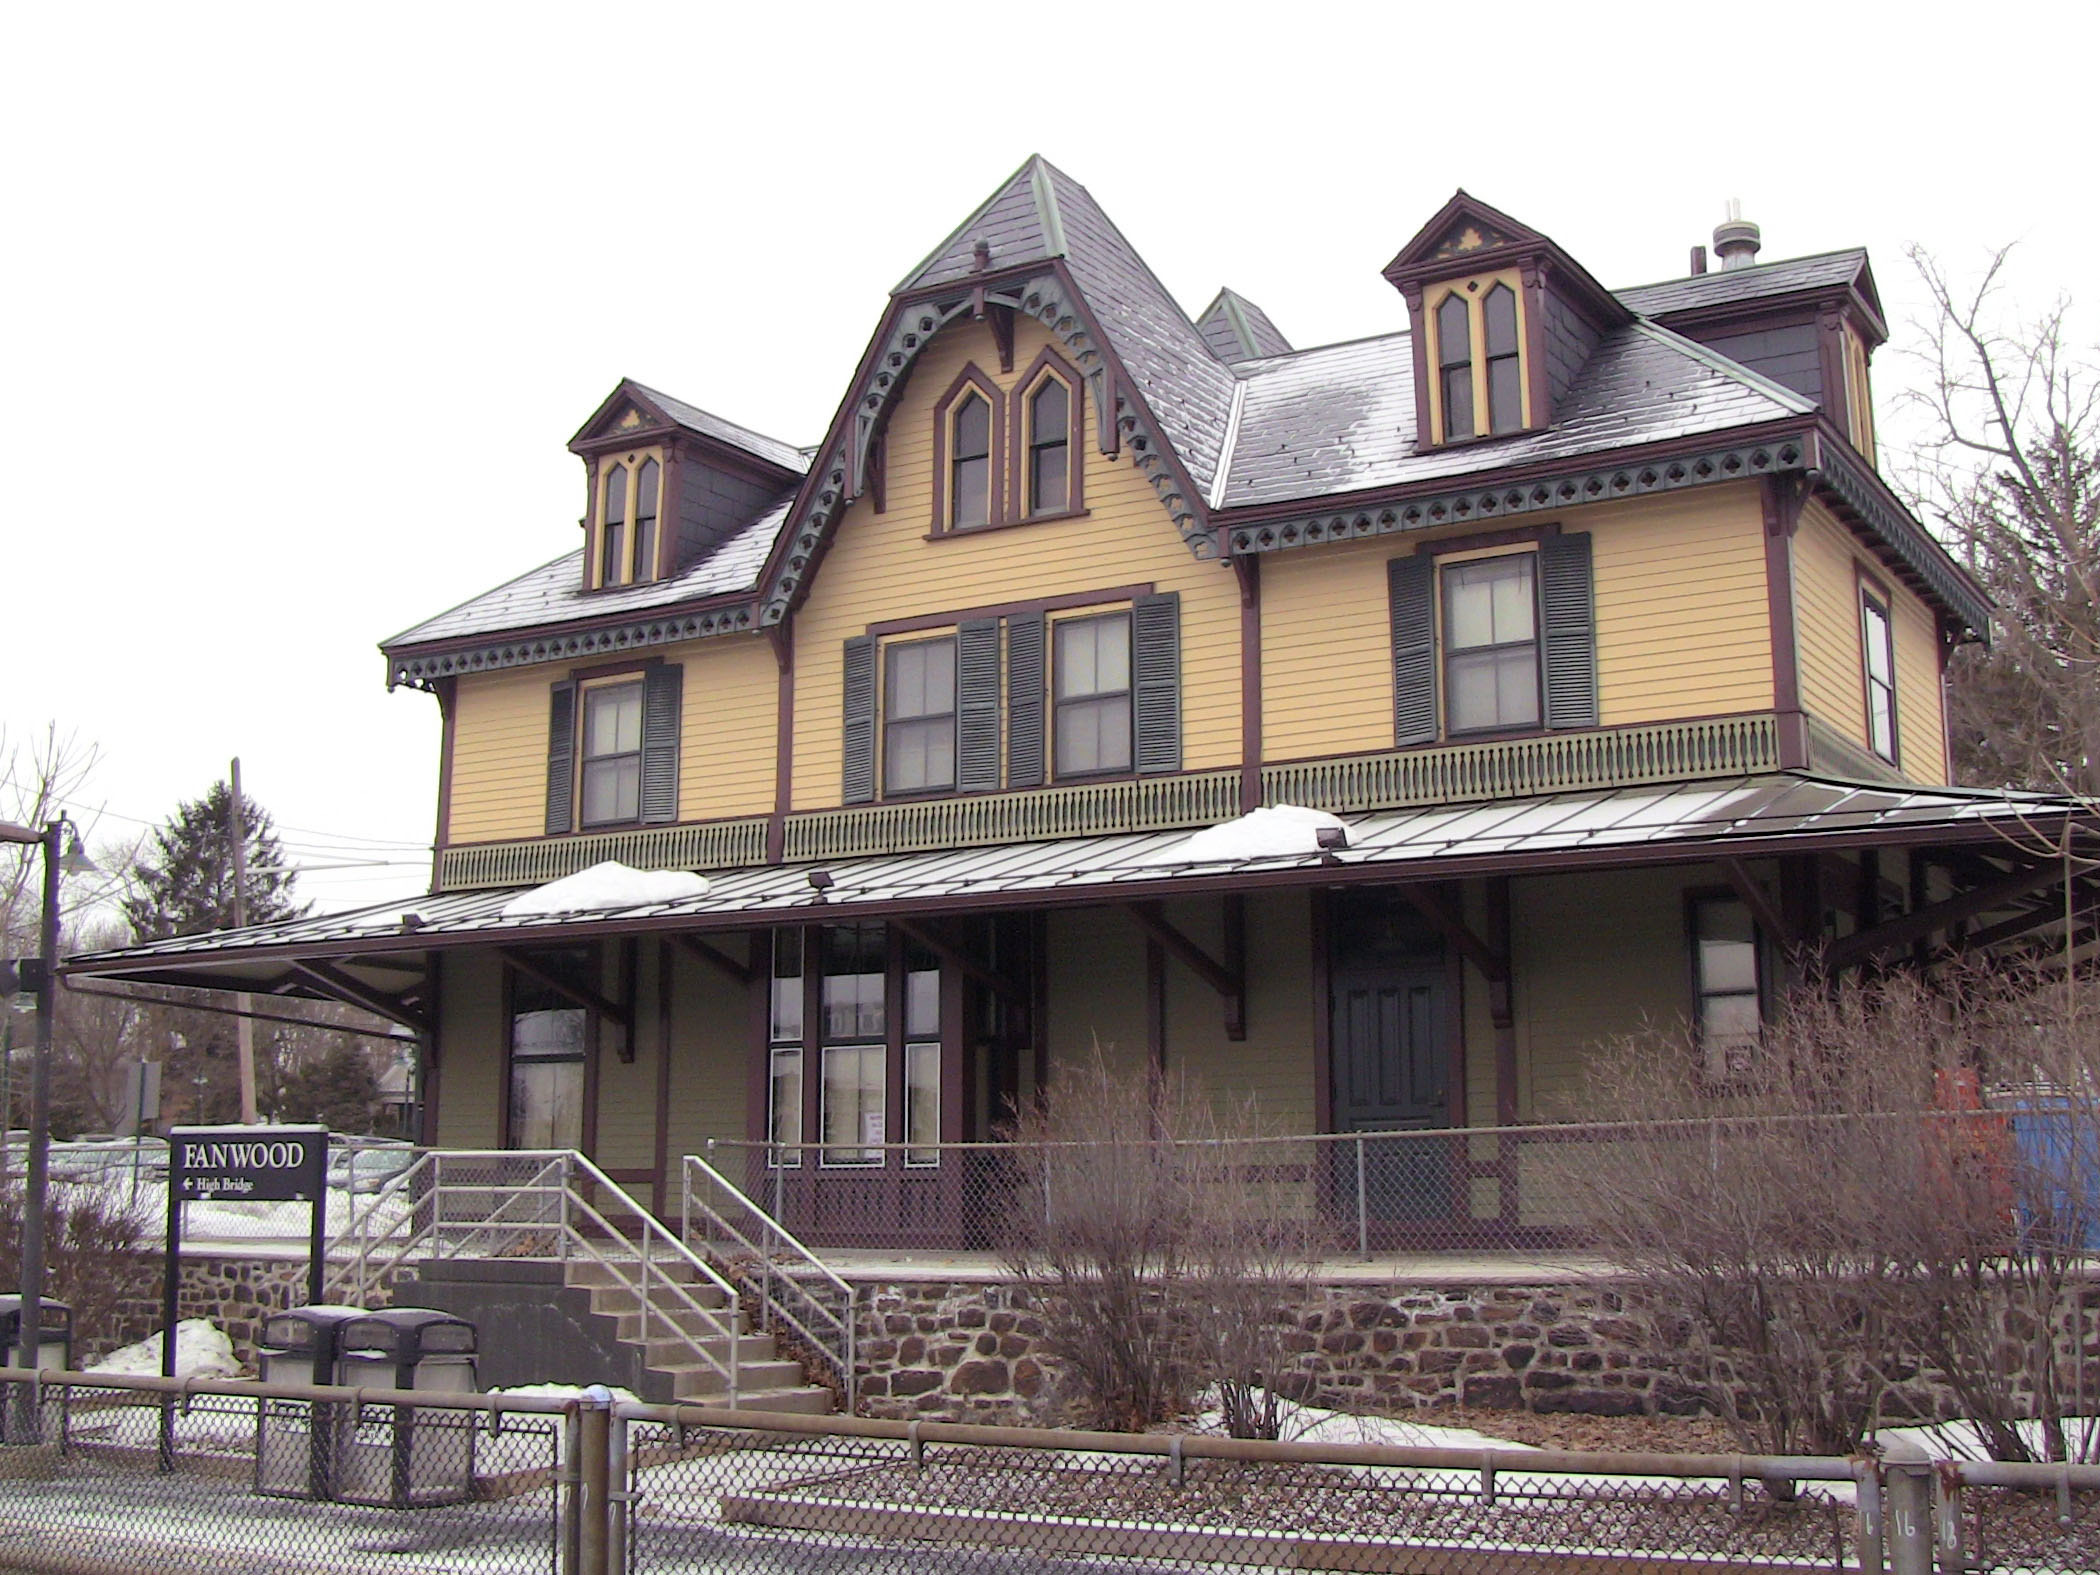 2c51acdfd44b6303e125_Fanwood_Train_Station_House.jpg